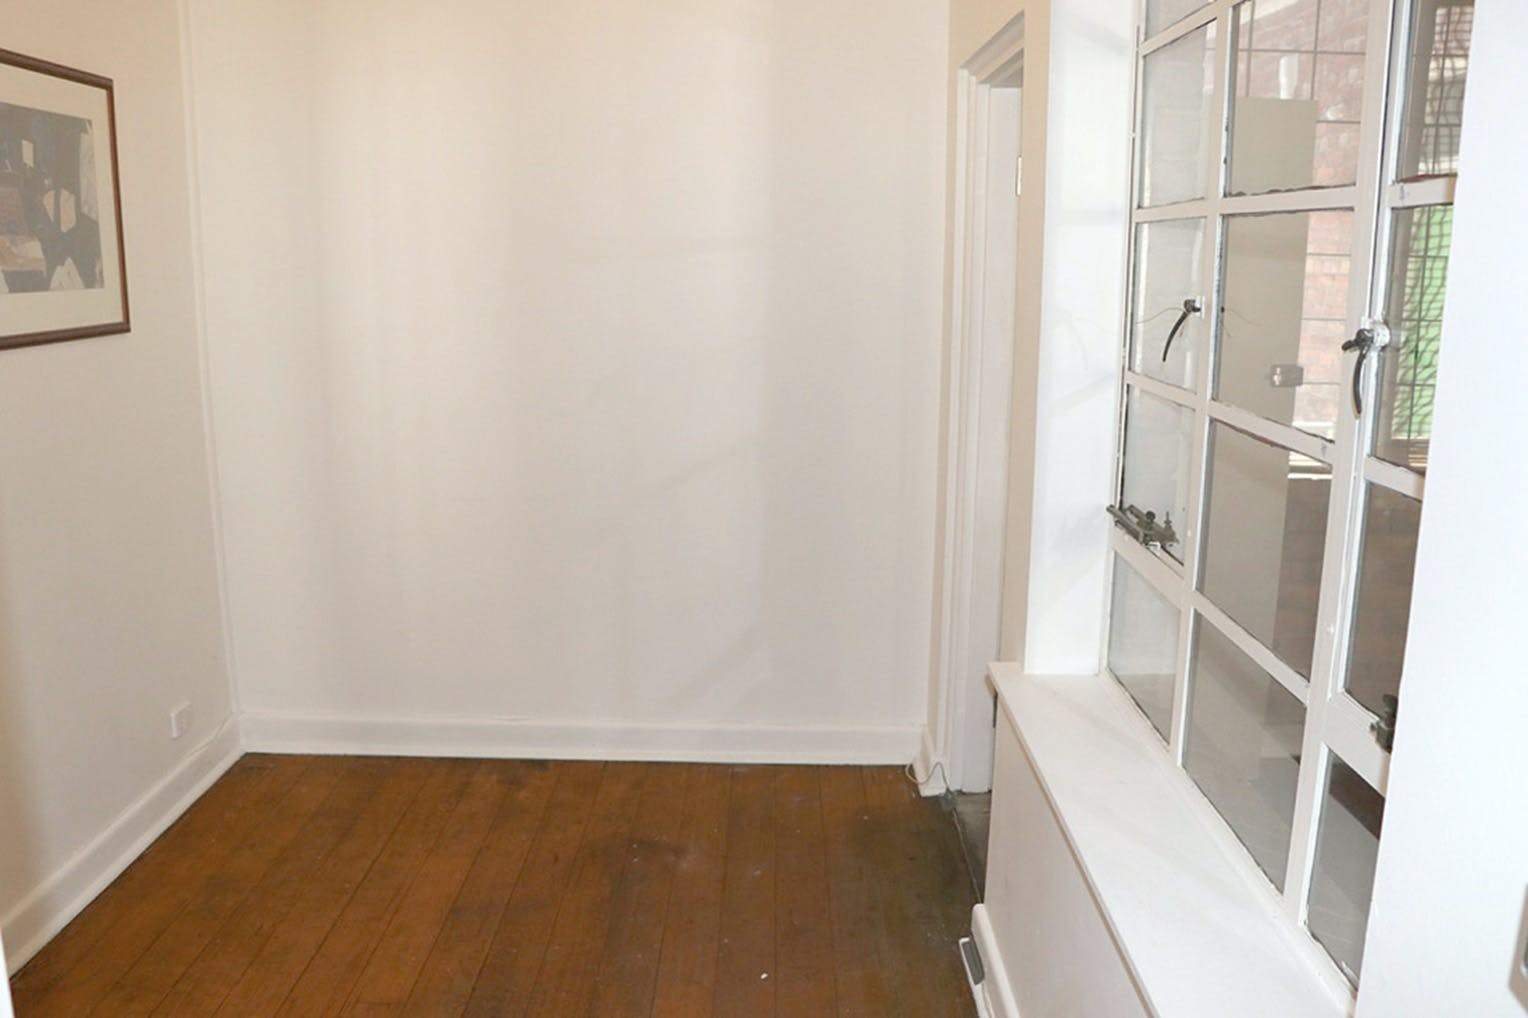 3 Rooms 30 sq meters, multi-use area at The Guitar Colonel, image 6